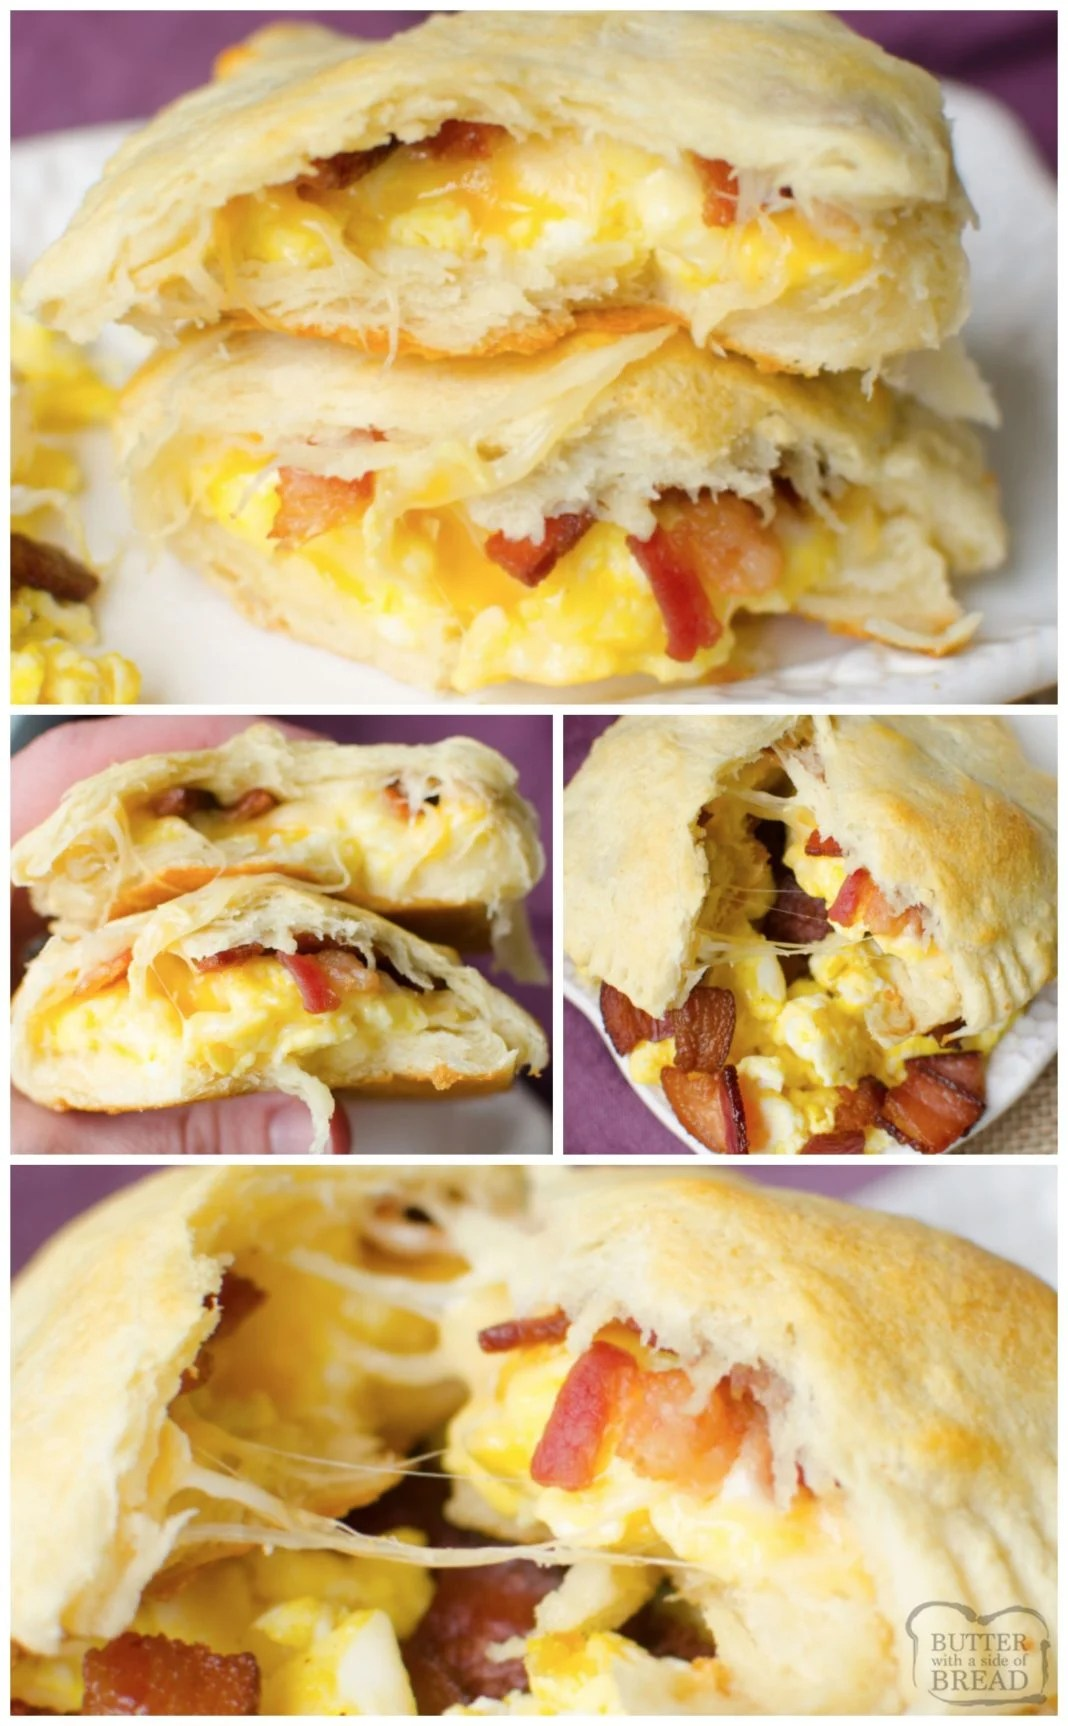 Bacon, Egg and Cheese Baked inside Crescent Dough for an easy breakfast recipe idea.